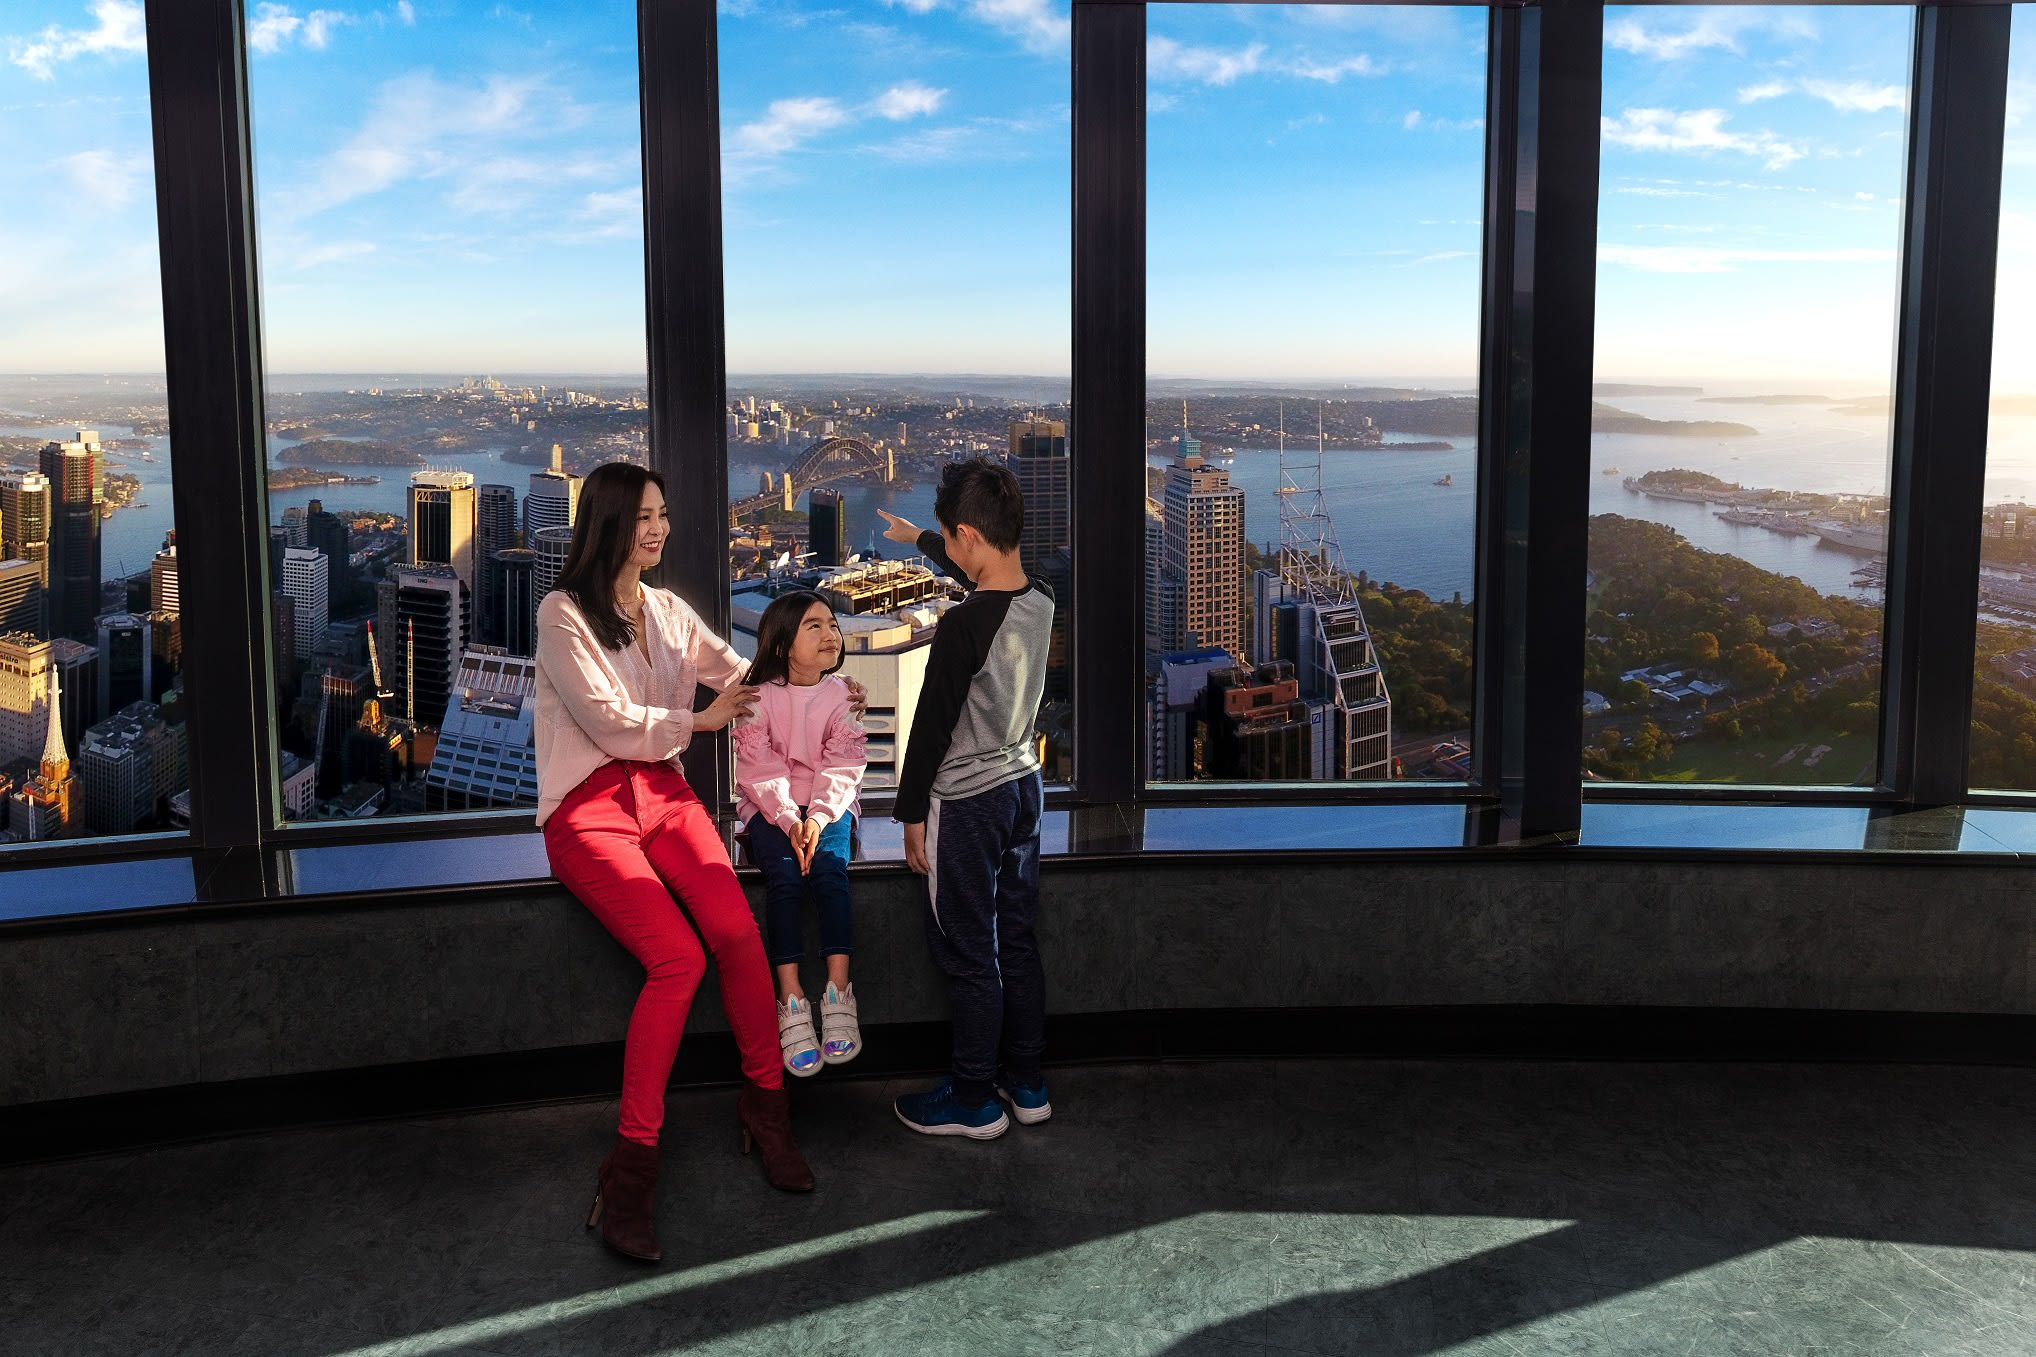 Sydney Tower Eye Observation Deck